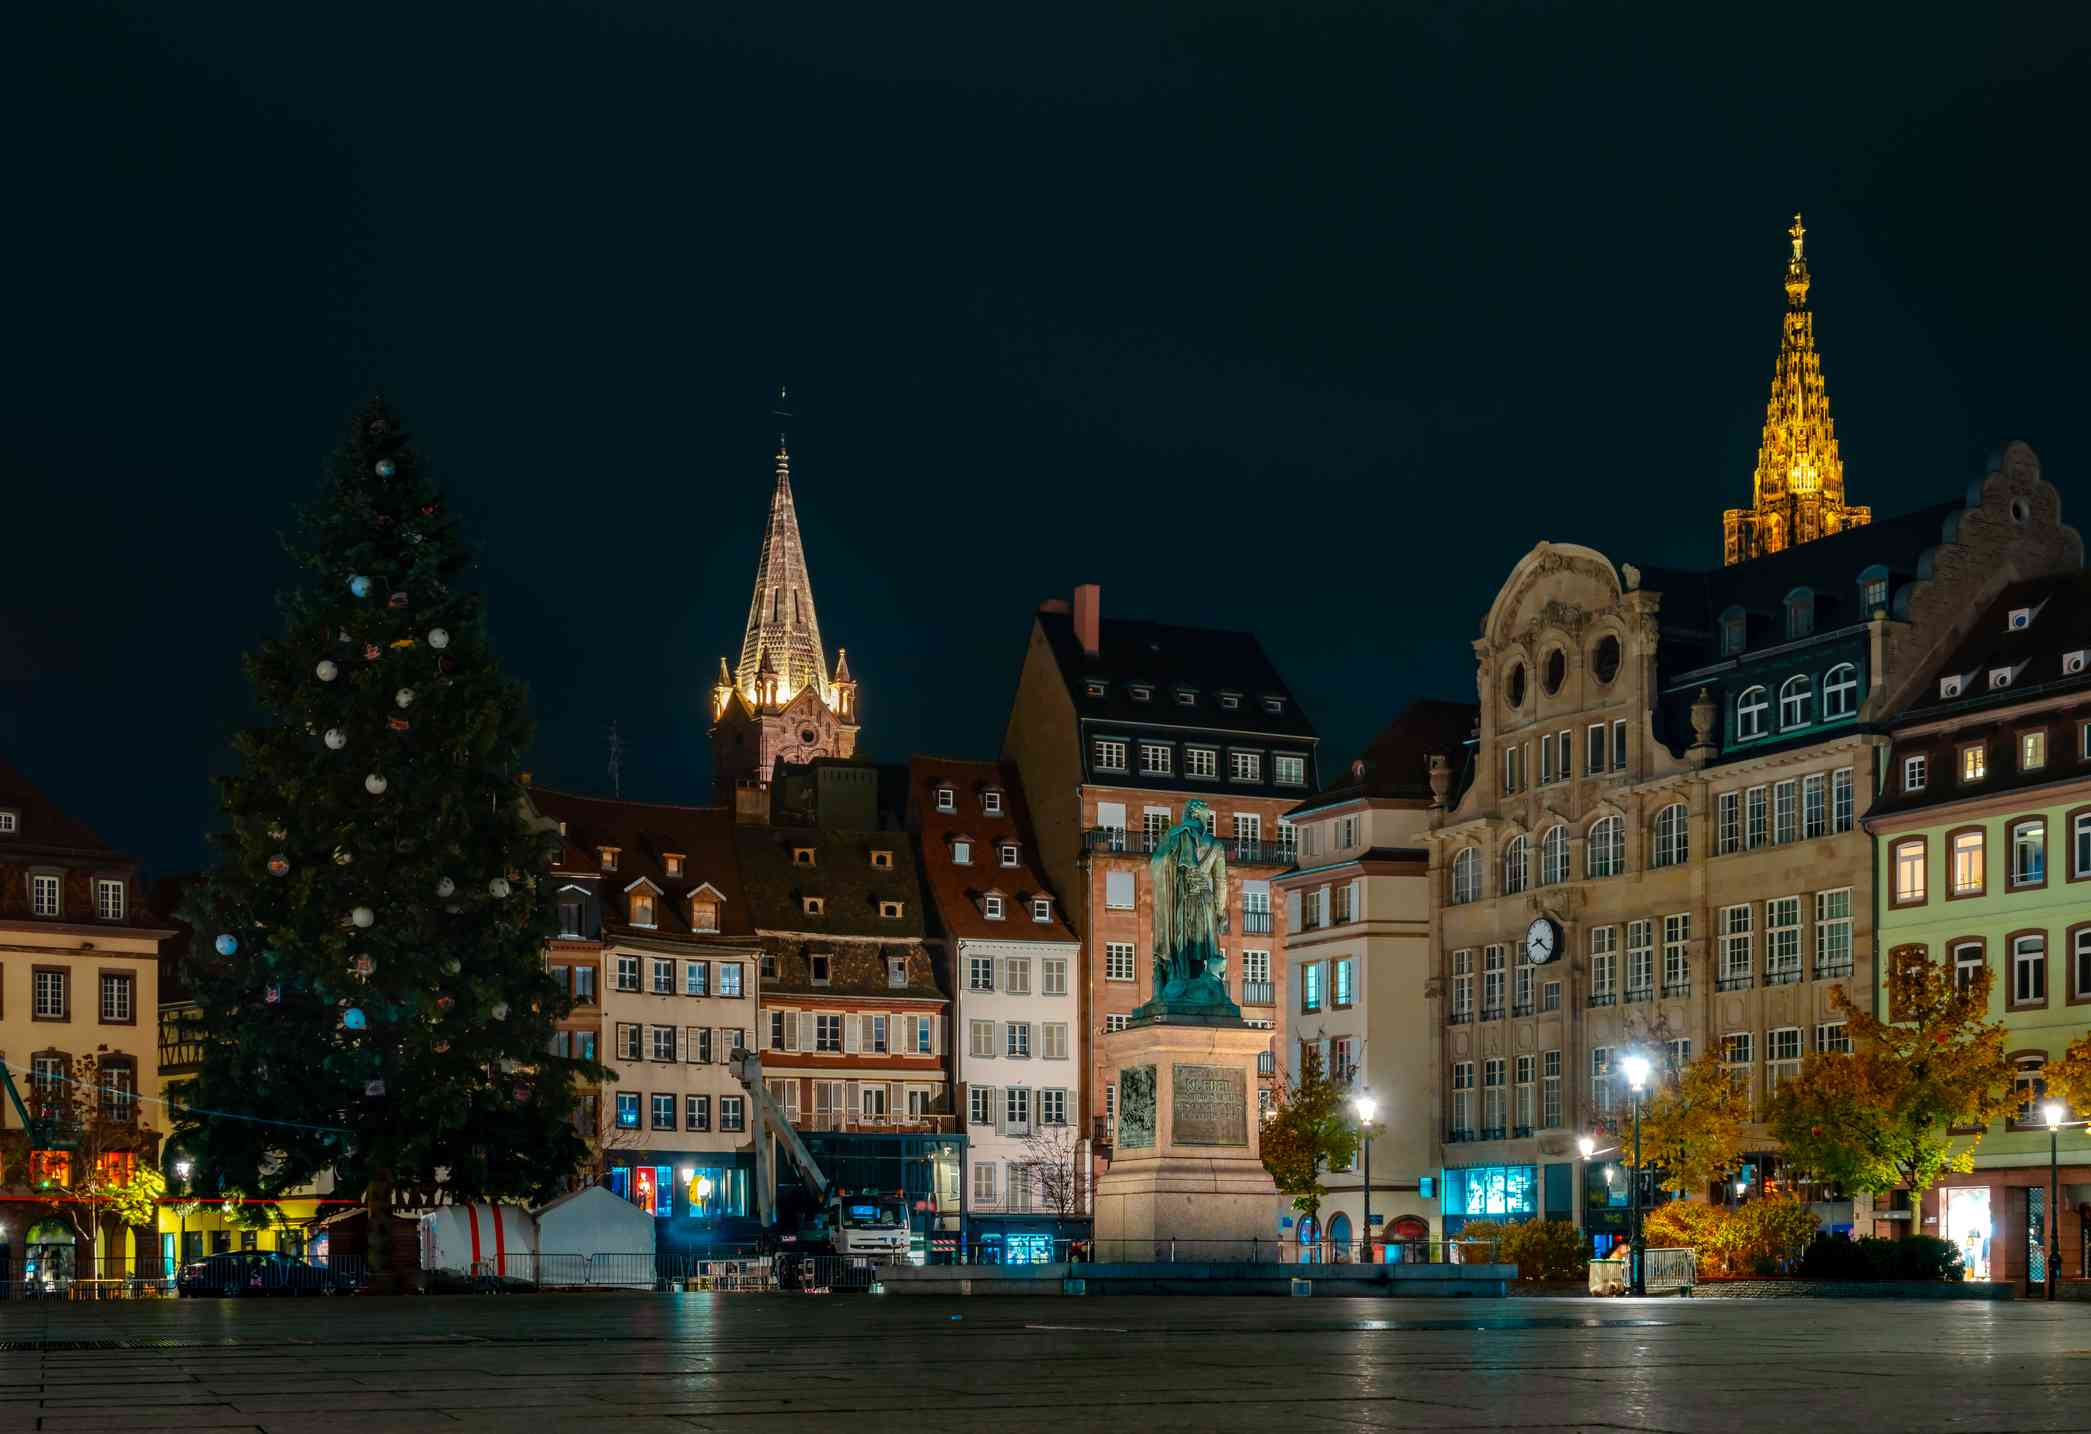 Central place Kleber in Strasbourg. Decorating of the huge christmas tree. Hi resolution night panoramic view. France.